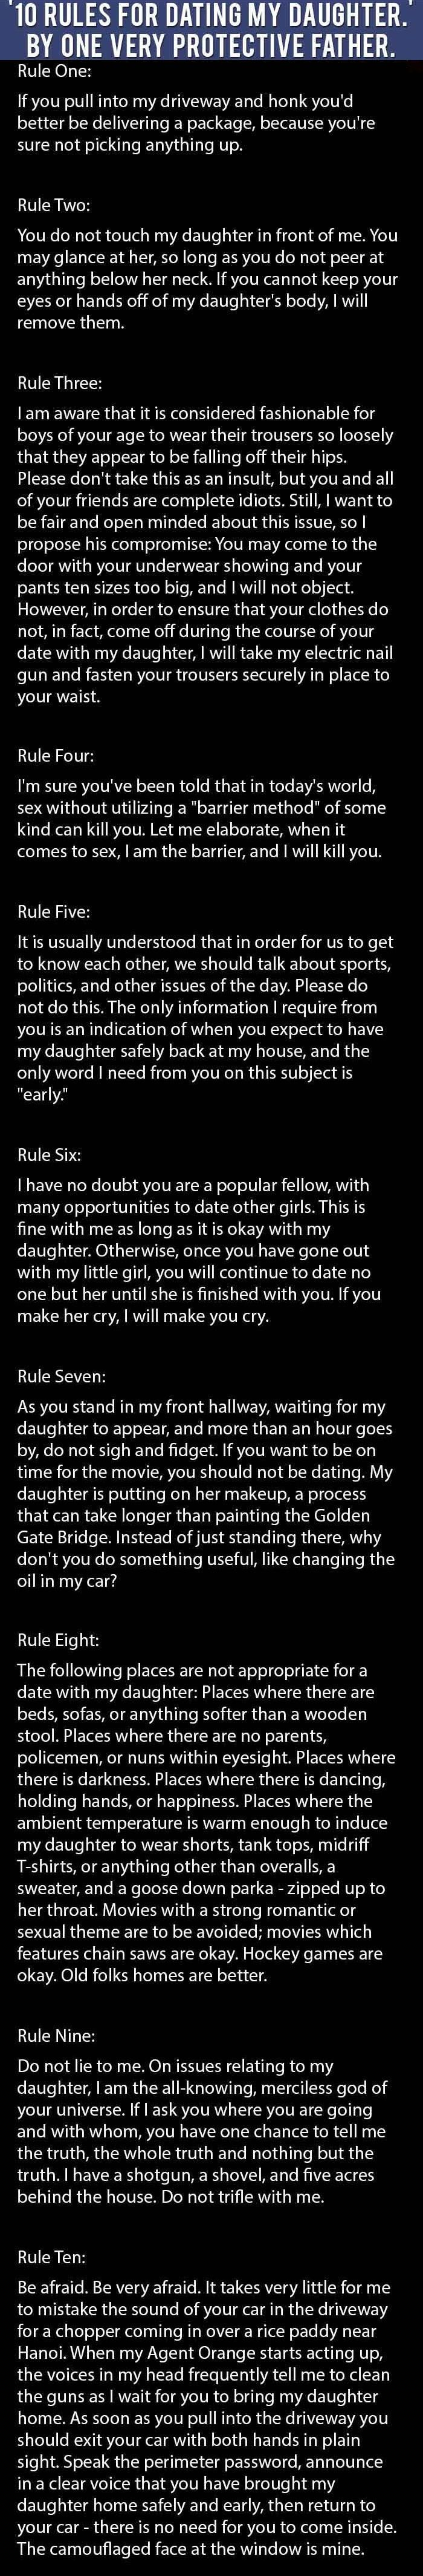 10 Simple Rules for Dating My Daughter -a joke. - September - Forums